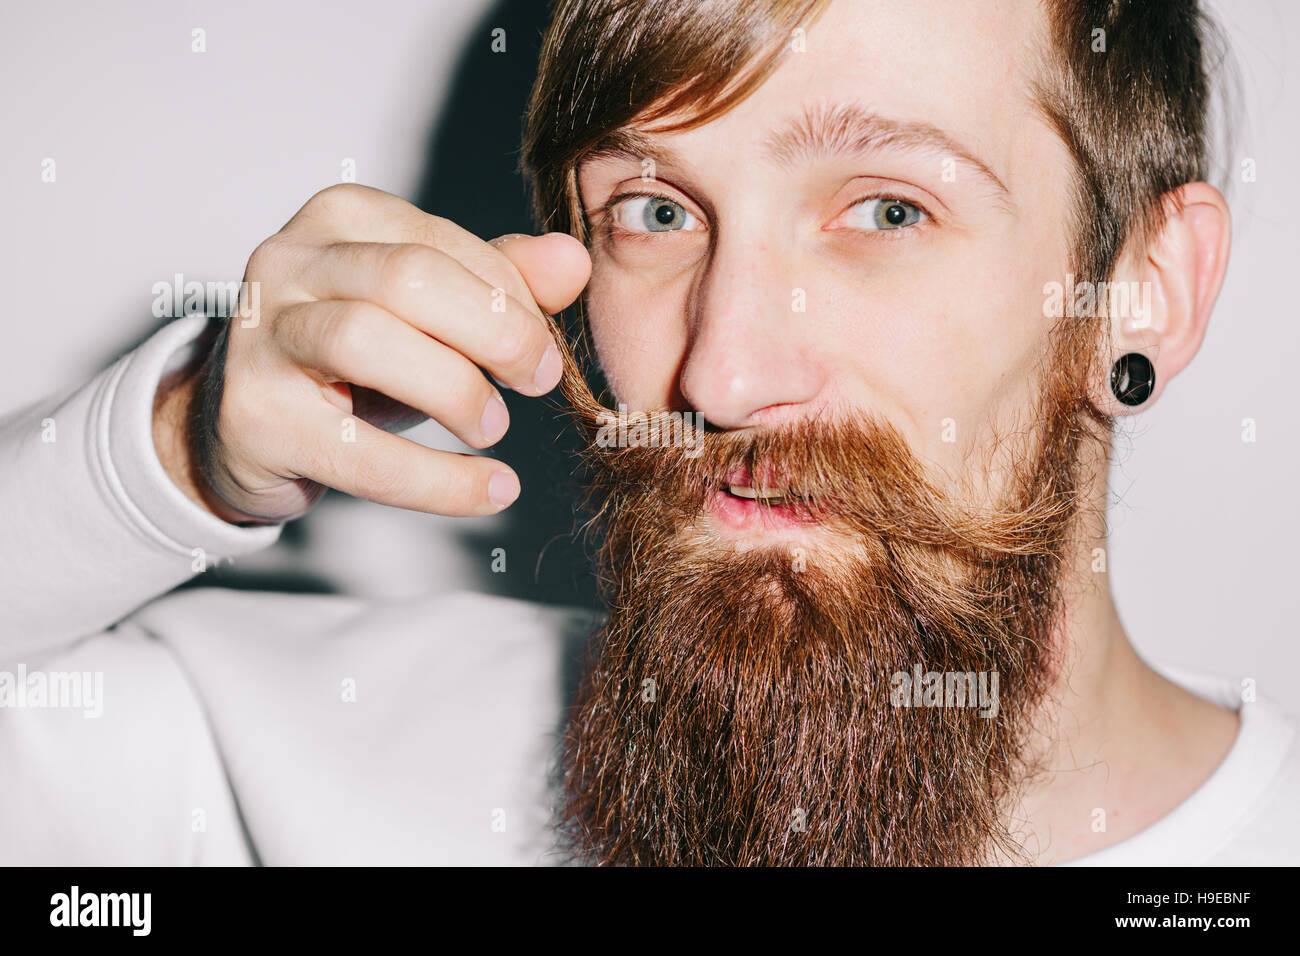 Bearded man twirling his mustache - Stock Image